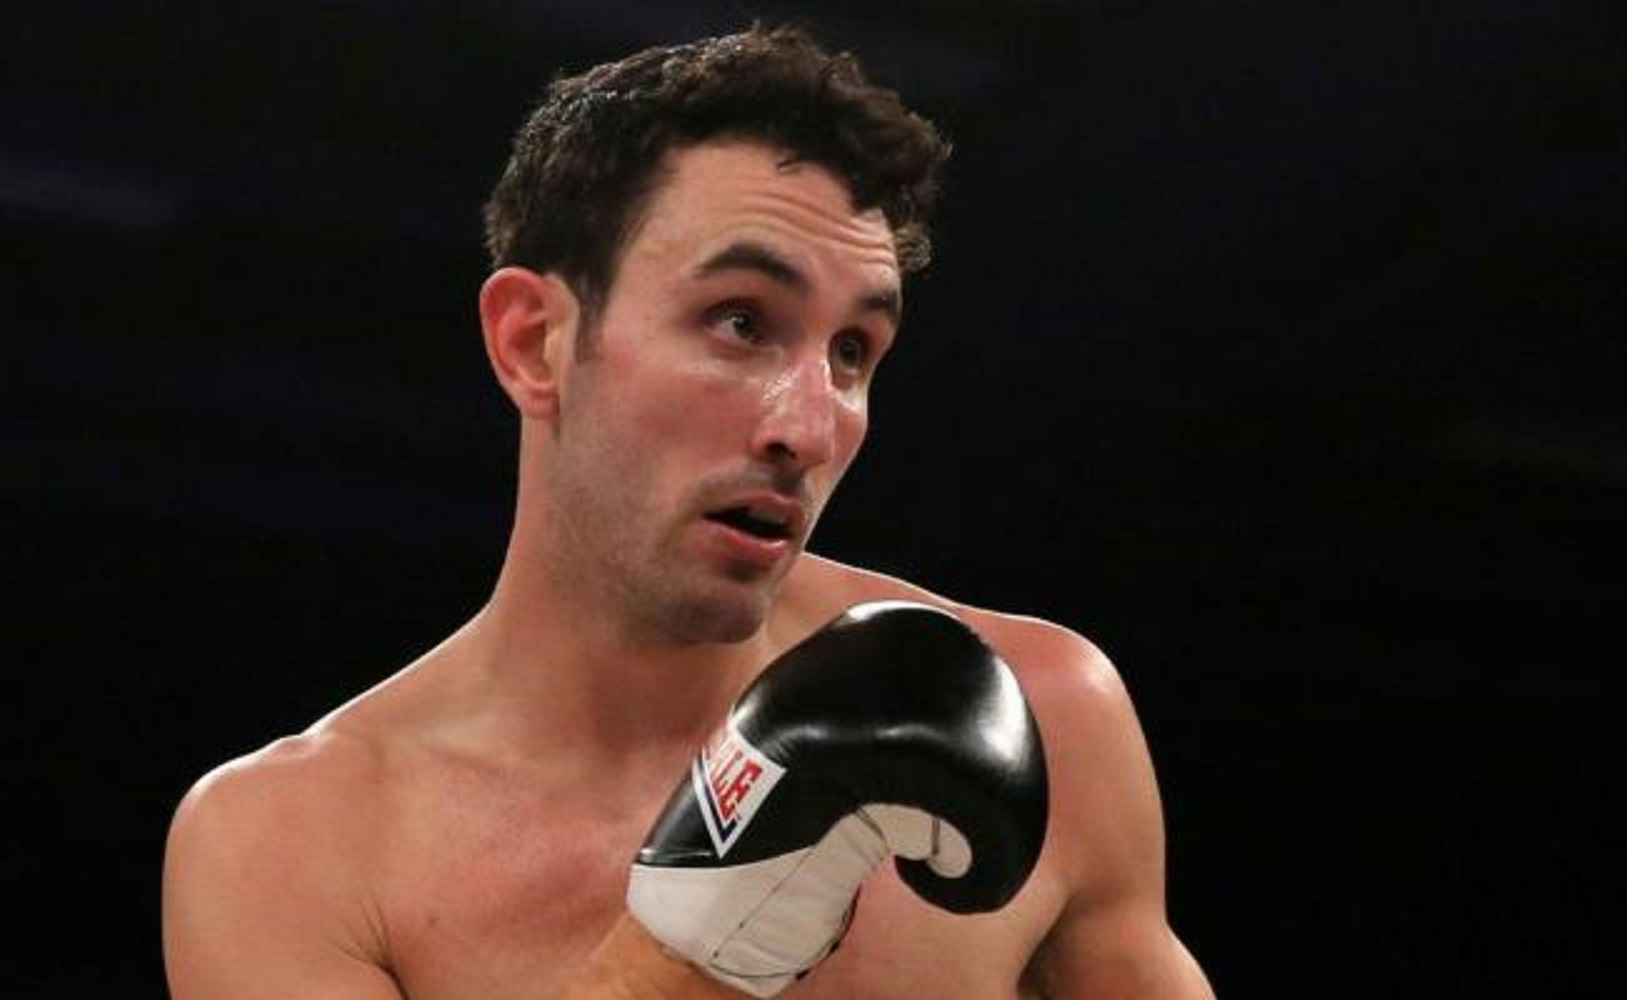 Scott Westgarth, Doncaster, Stefy Bull, Redes Sociales, Box,